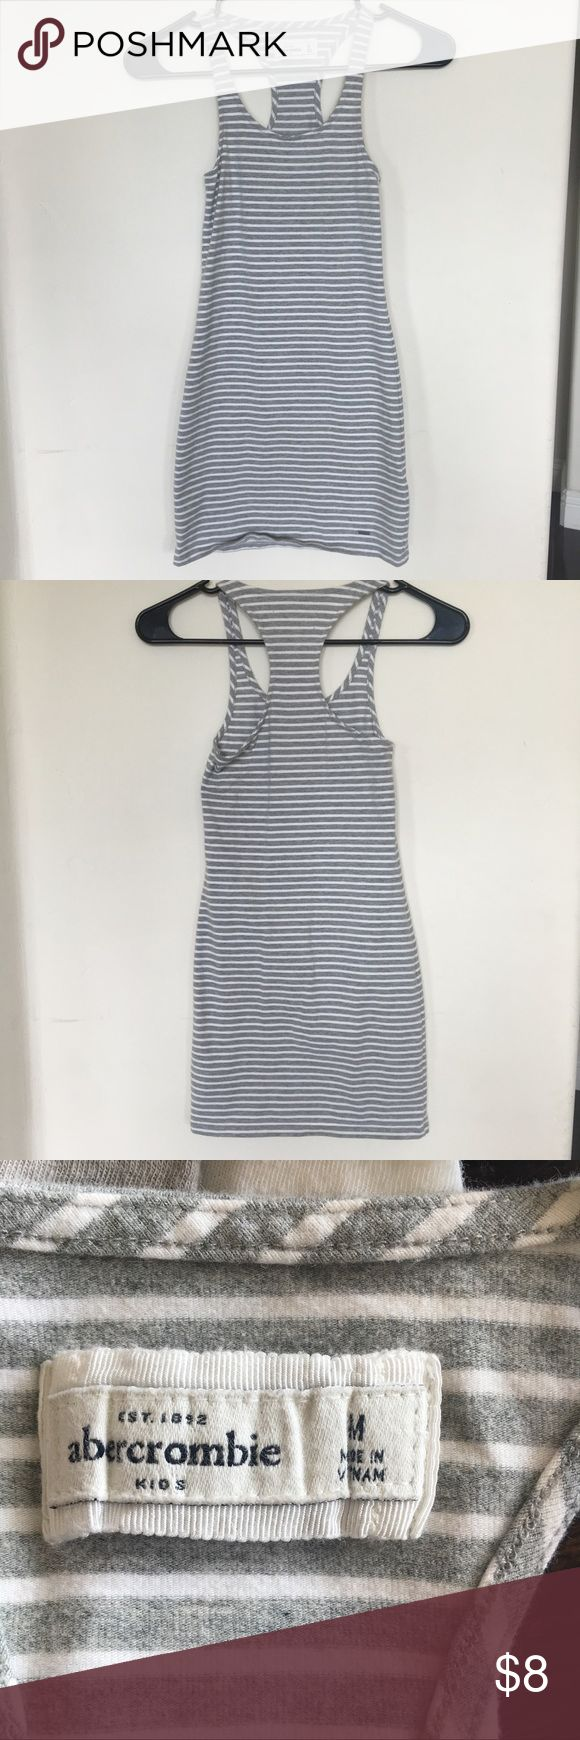 Abercrombie Kids dress.  Girl's Size (M). Abercrombie Kids dress.  Girl's Size (M). Cute dress for summer. Great condition. Abercombie Kids Dresses Casual